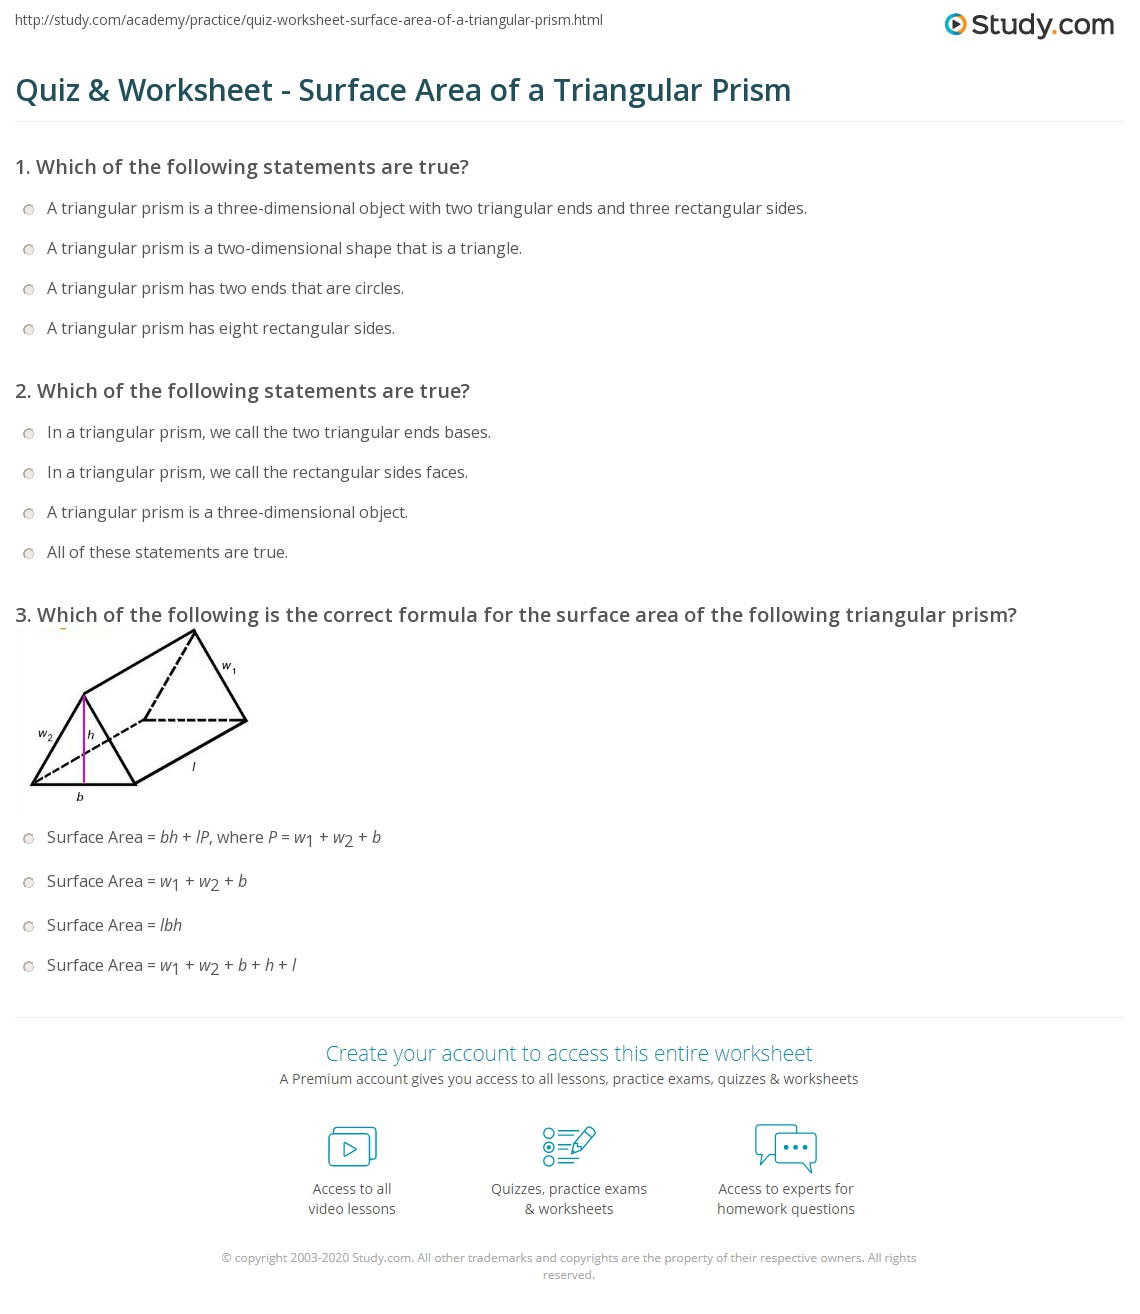 worksheet Surface Area Of Triangular Prism Worksheet quiz worksheet surface area of a triangular prism study com print worksheet